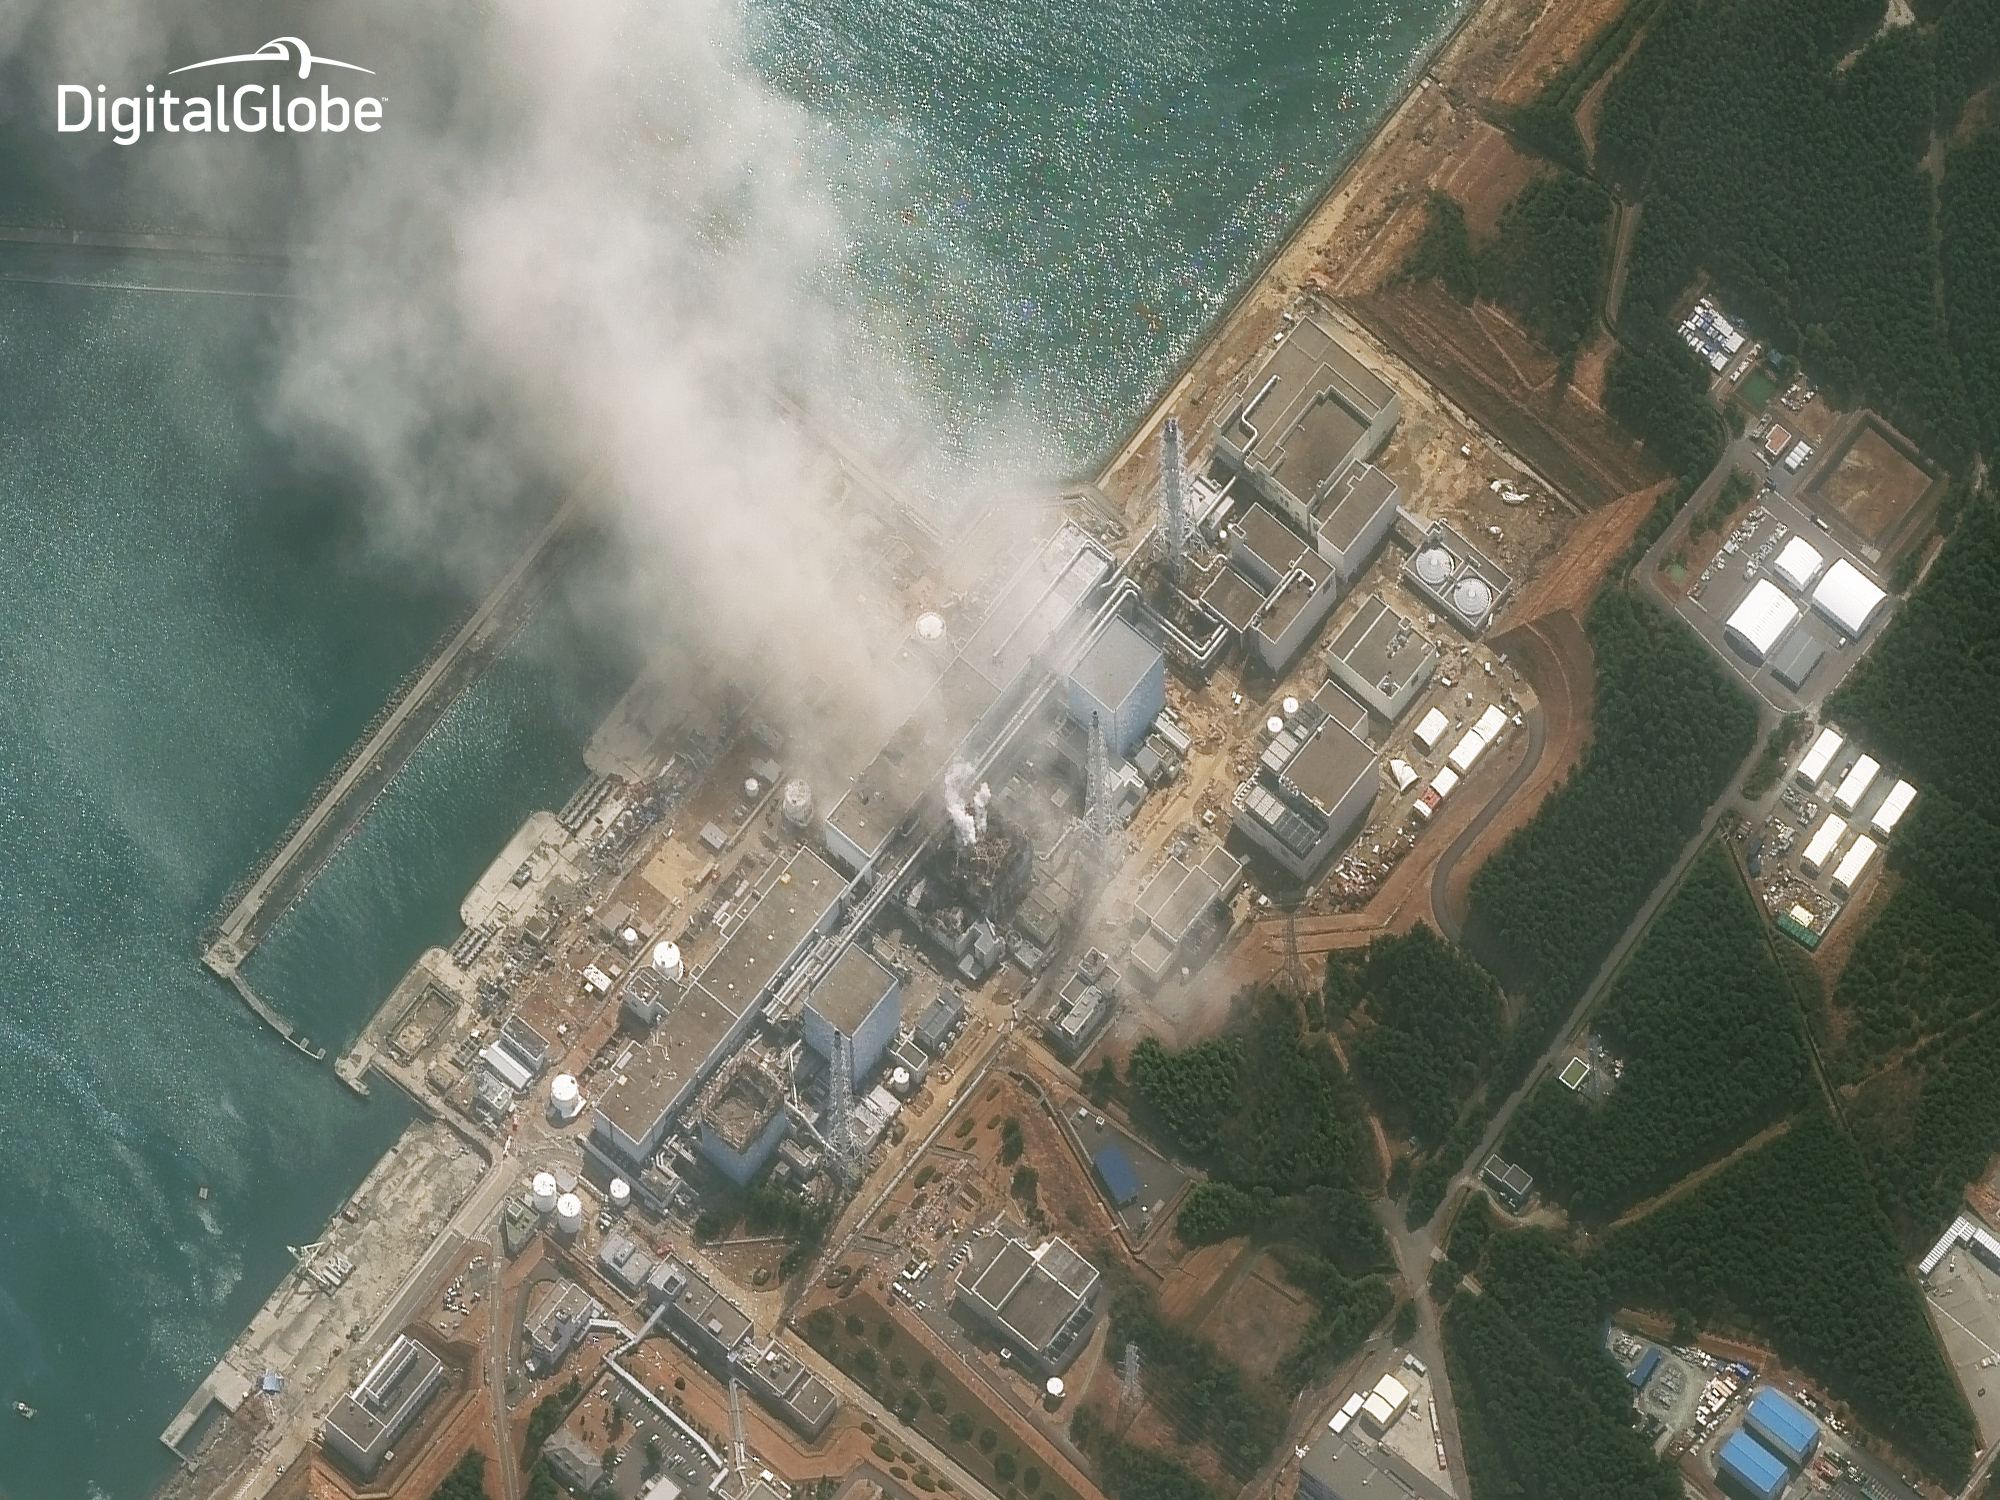 Three minutes after the Fukushima Reactor 3 exploded on March 14, 2011